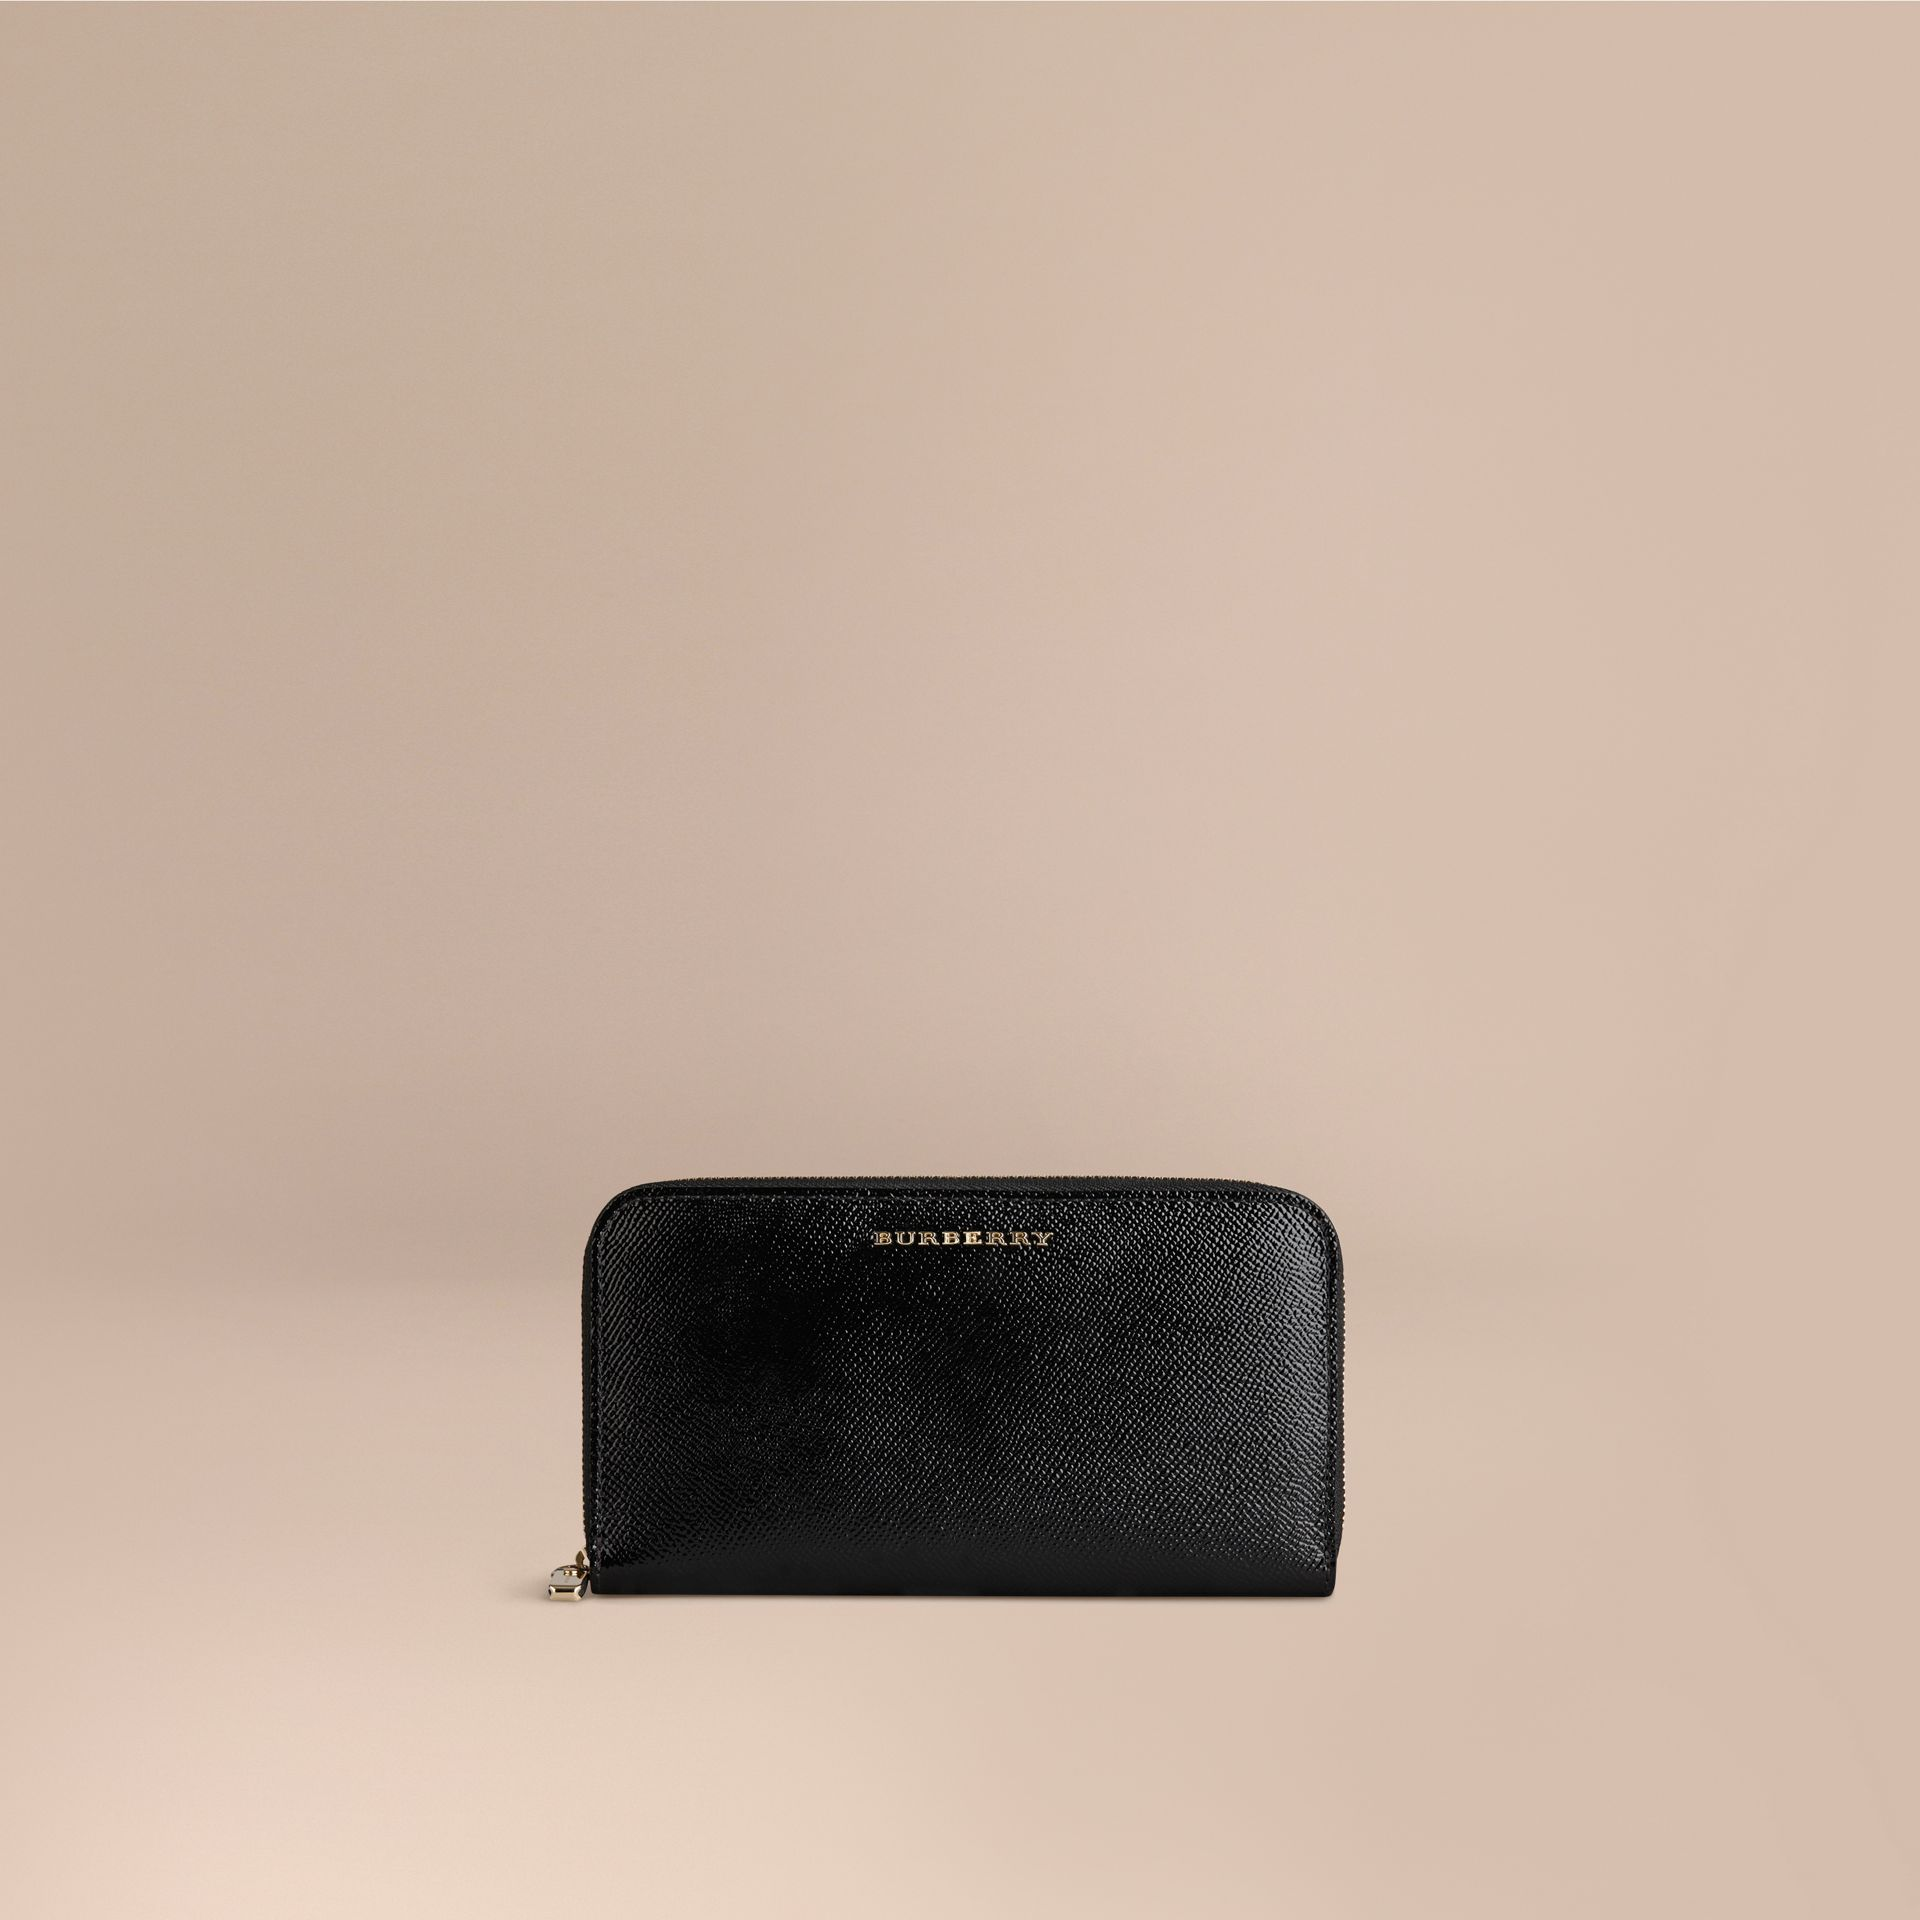 Black Patent London Leather Ziparound Wallet Black - gallery image 1